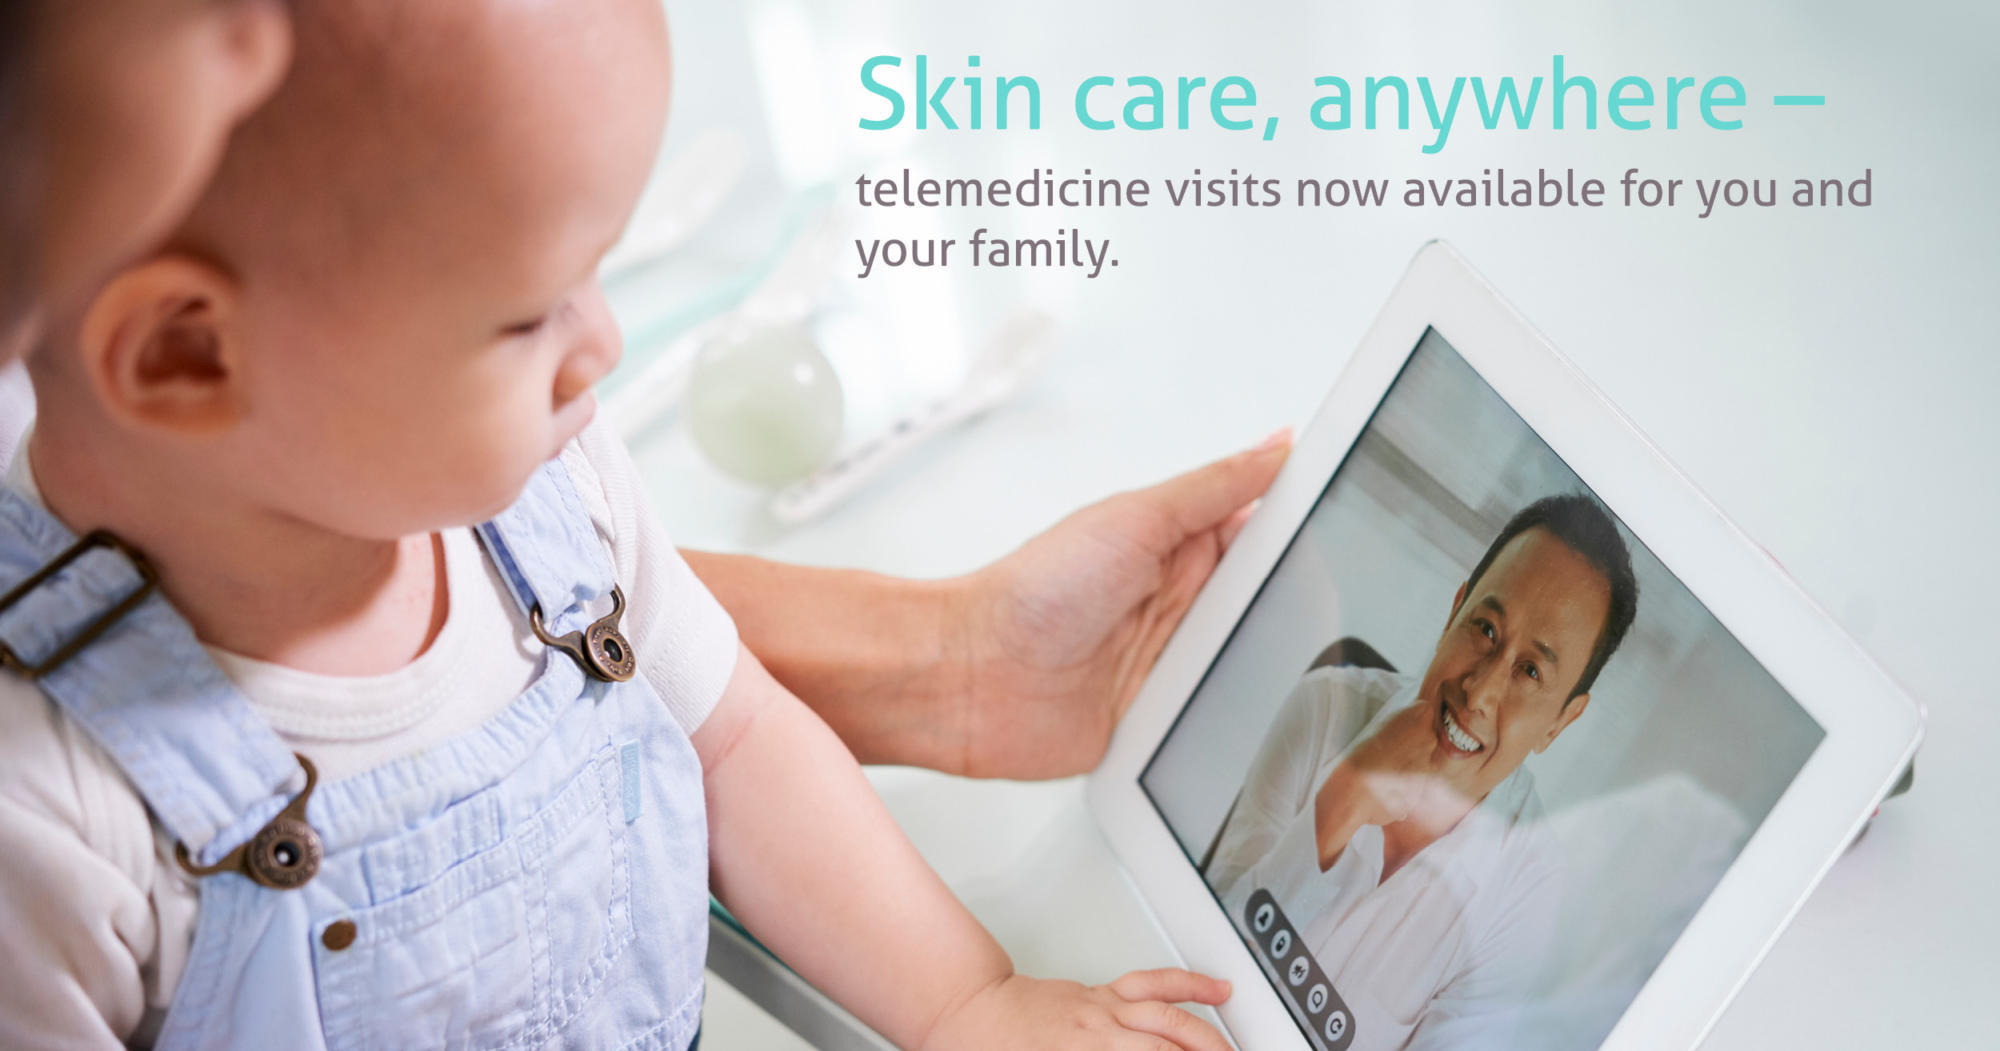 Parent and baby doing a telemedicine appointment on an iPad